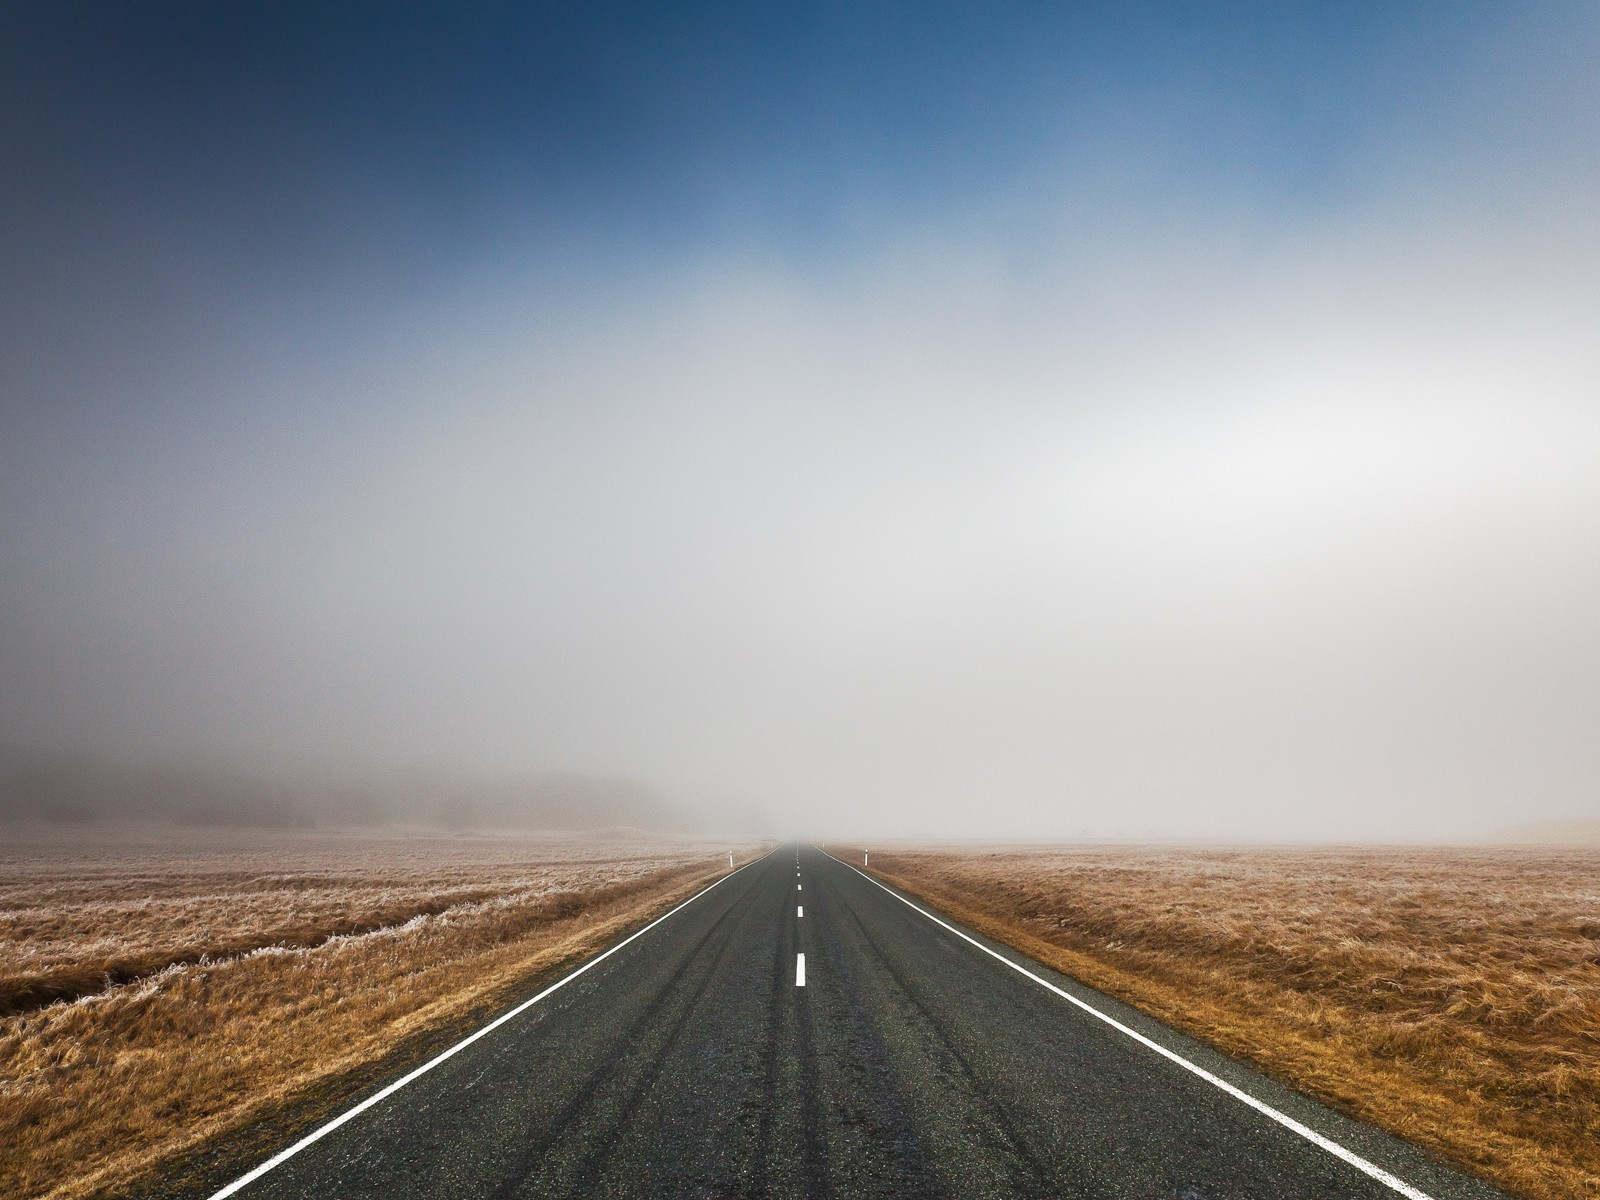 Image Desert Highway Wallpapers And Stock Photos